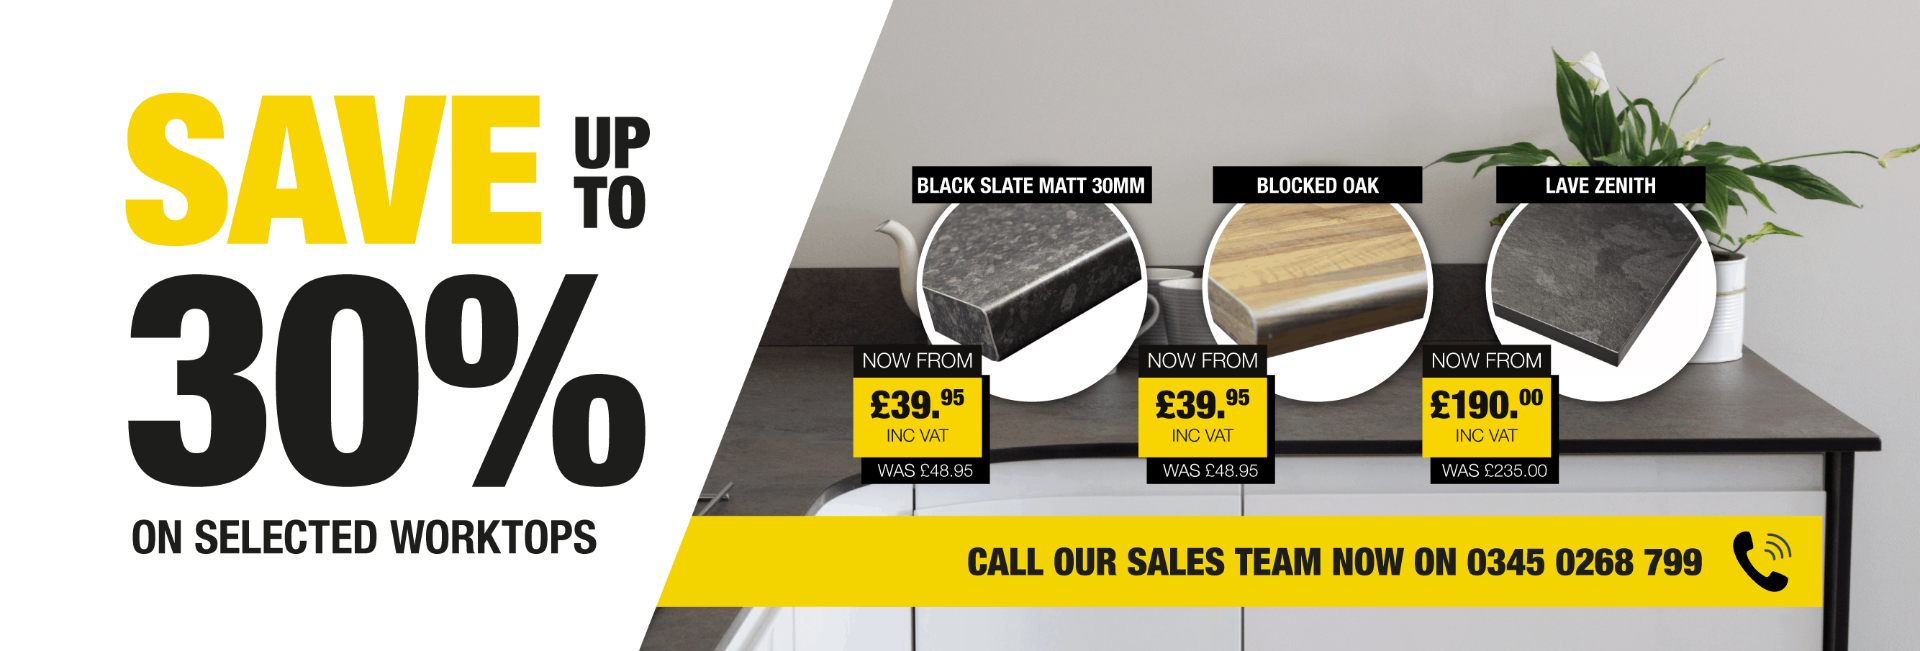 Save up to 30% on selected worktops